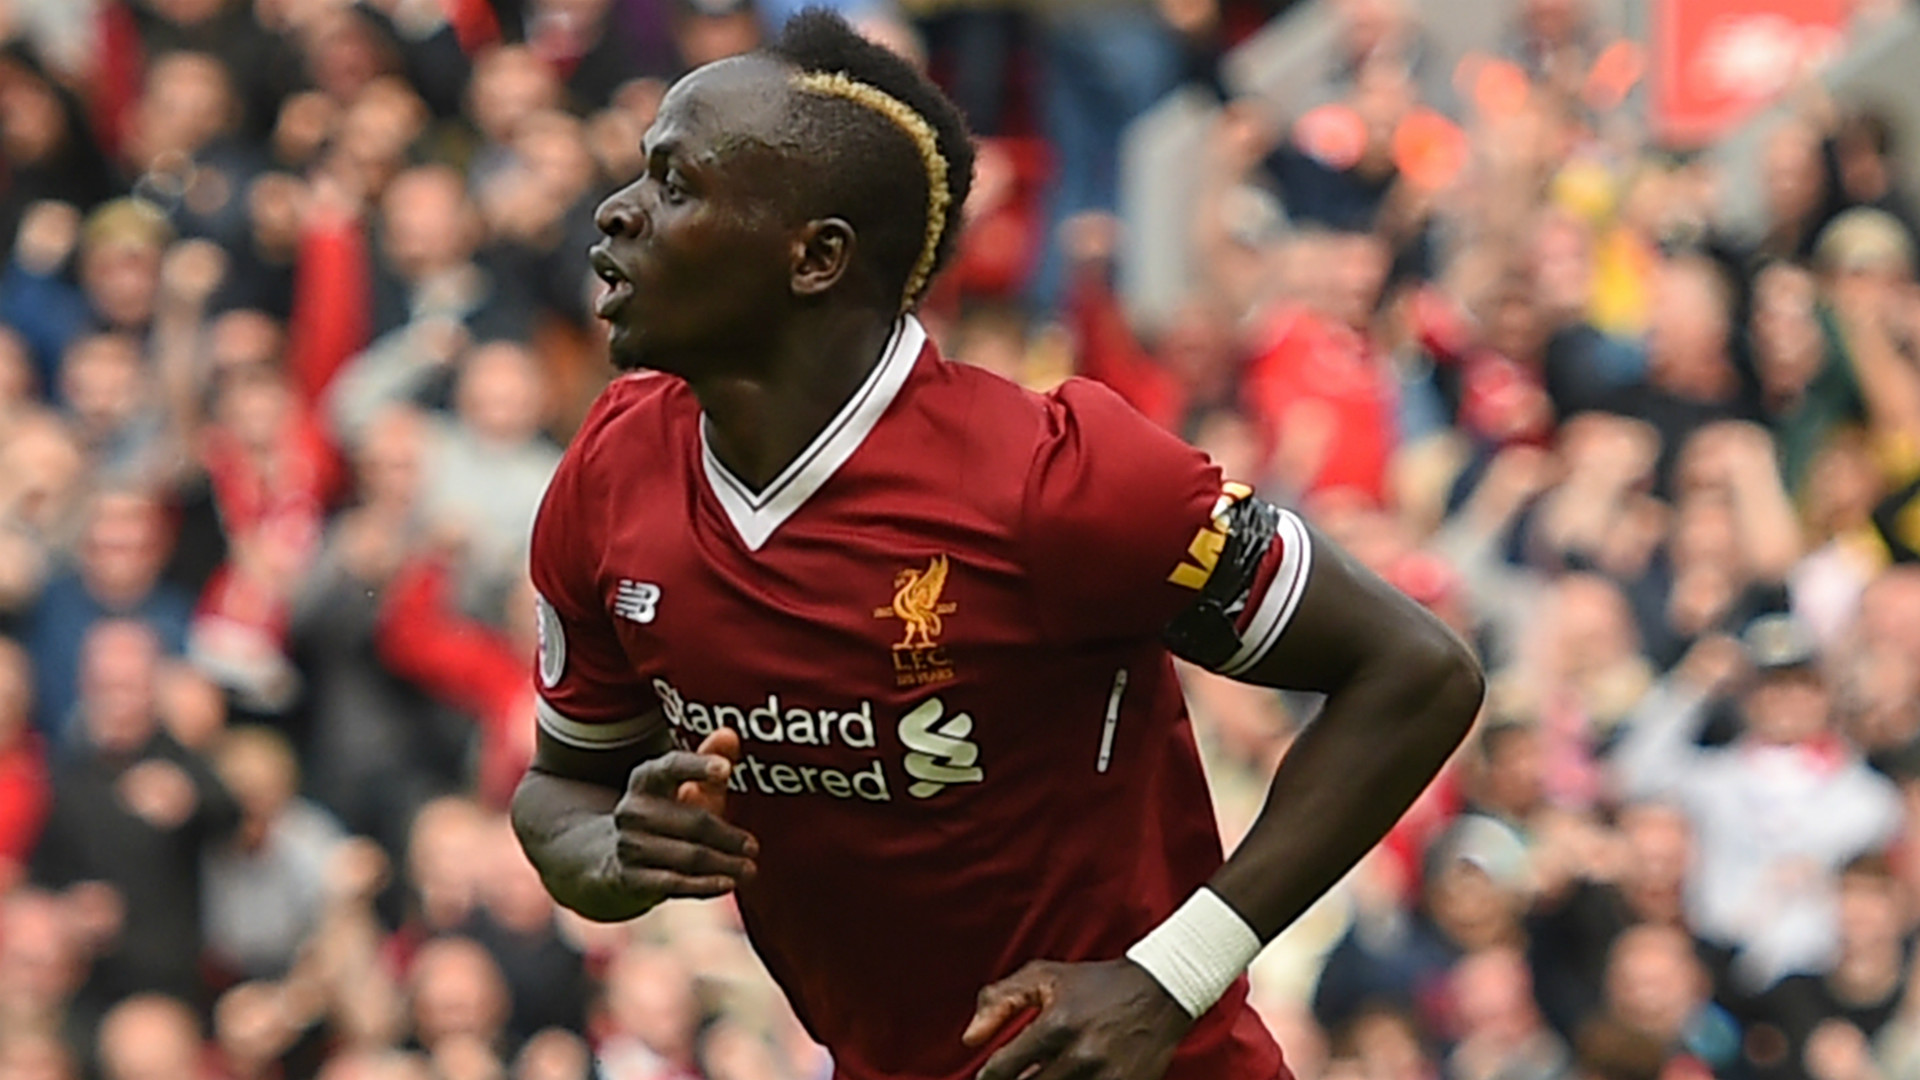 Sadio Mane stars as creator and finisher as Liverpool look short